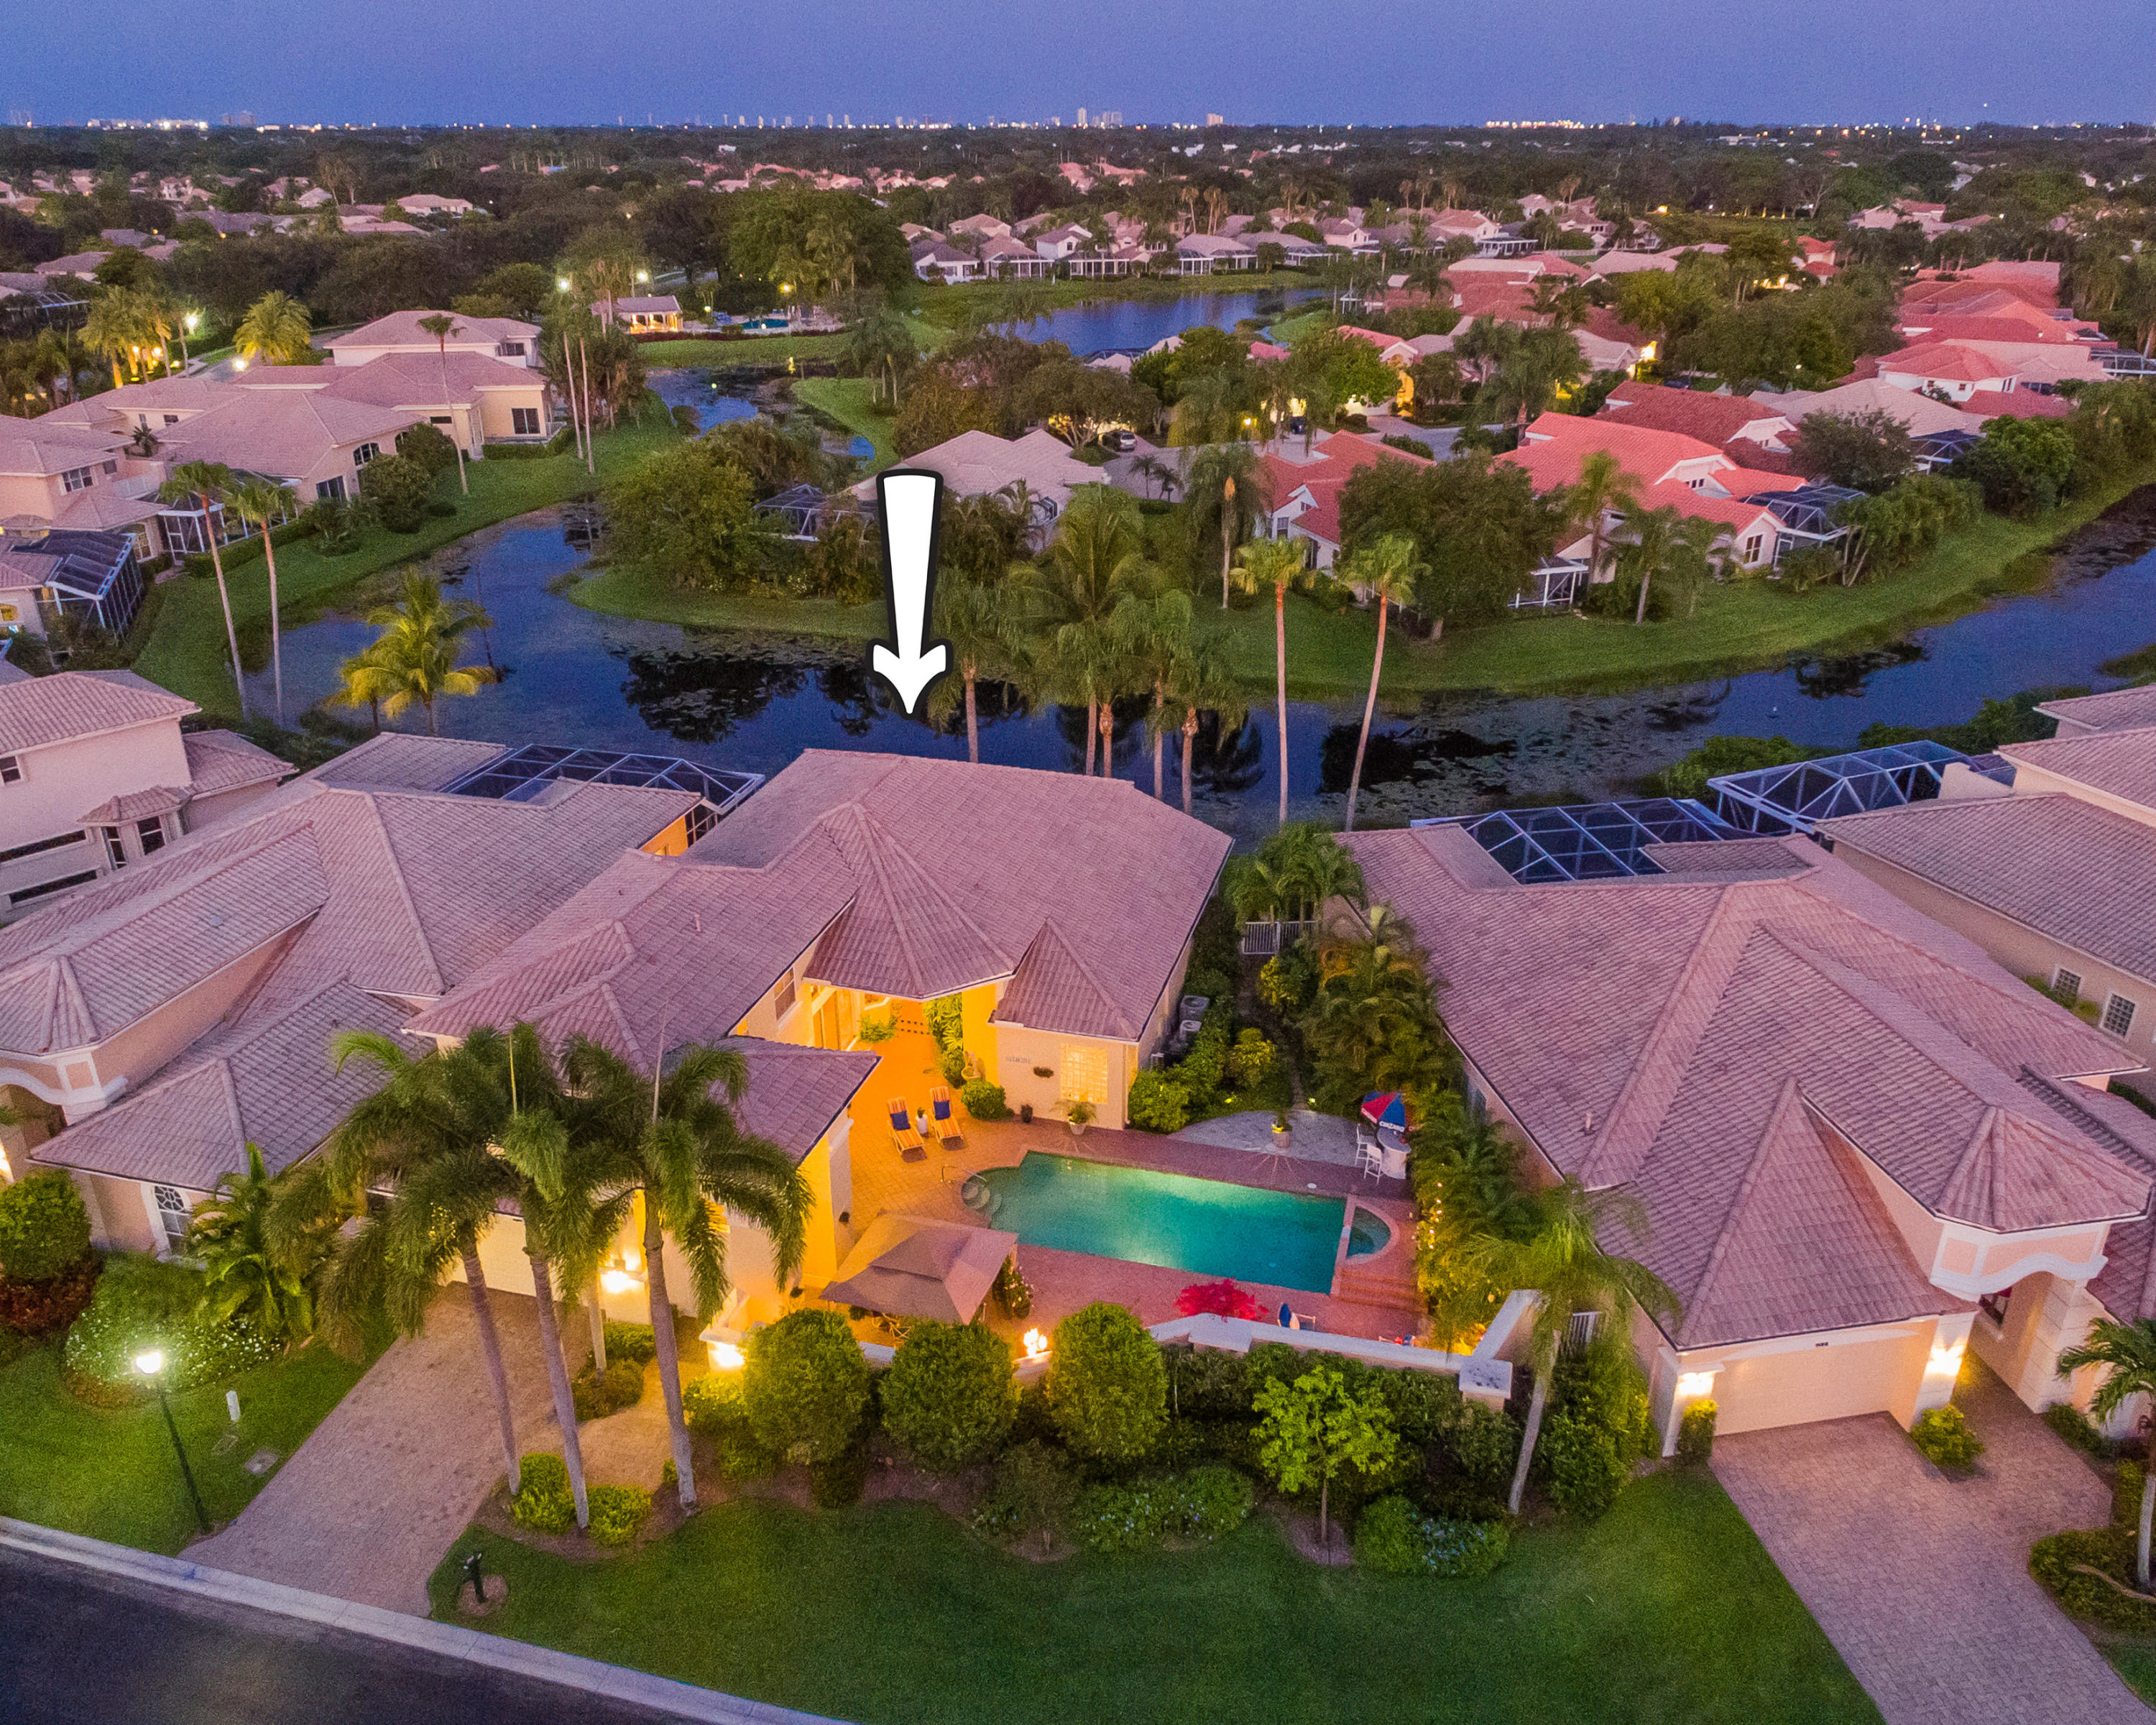 1134 Grand Cay Drive, Palm Beach Gardens, Florida 33418, 4 Bedrooms Bedrooms, ,4.1 BathroomsBathrooms,A,Single family,Grand Cay,RX-10474821